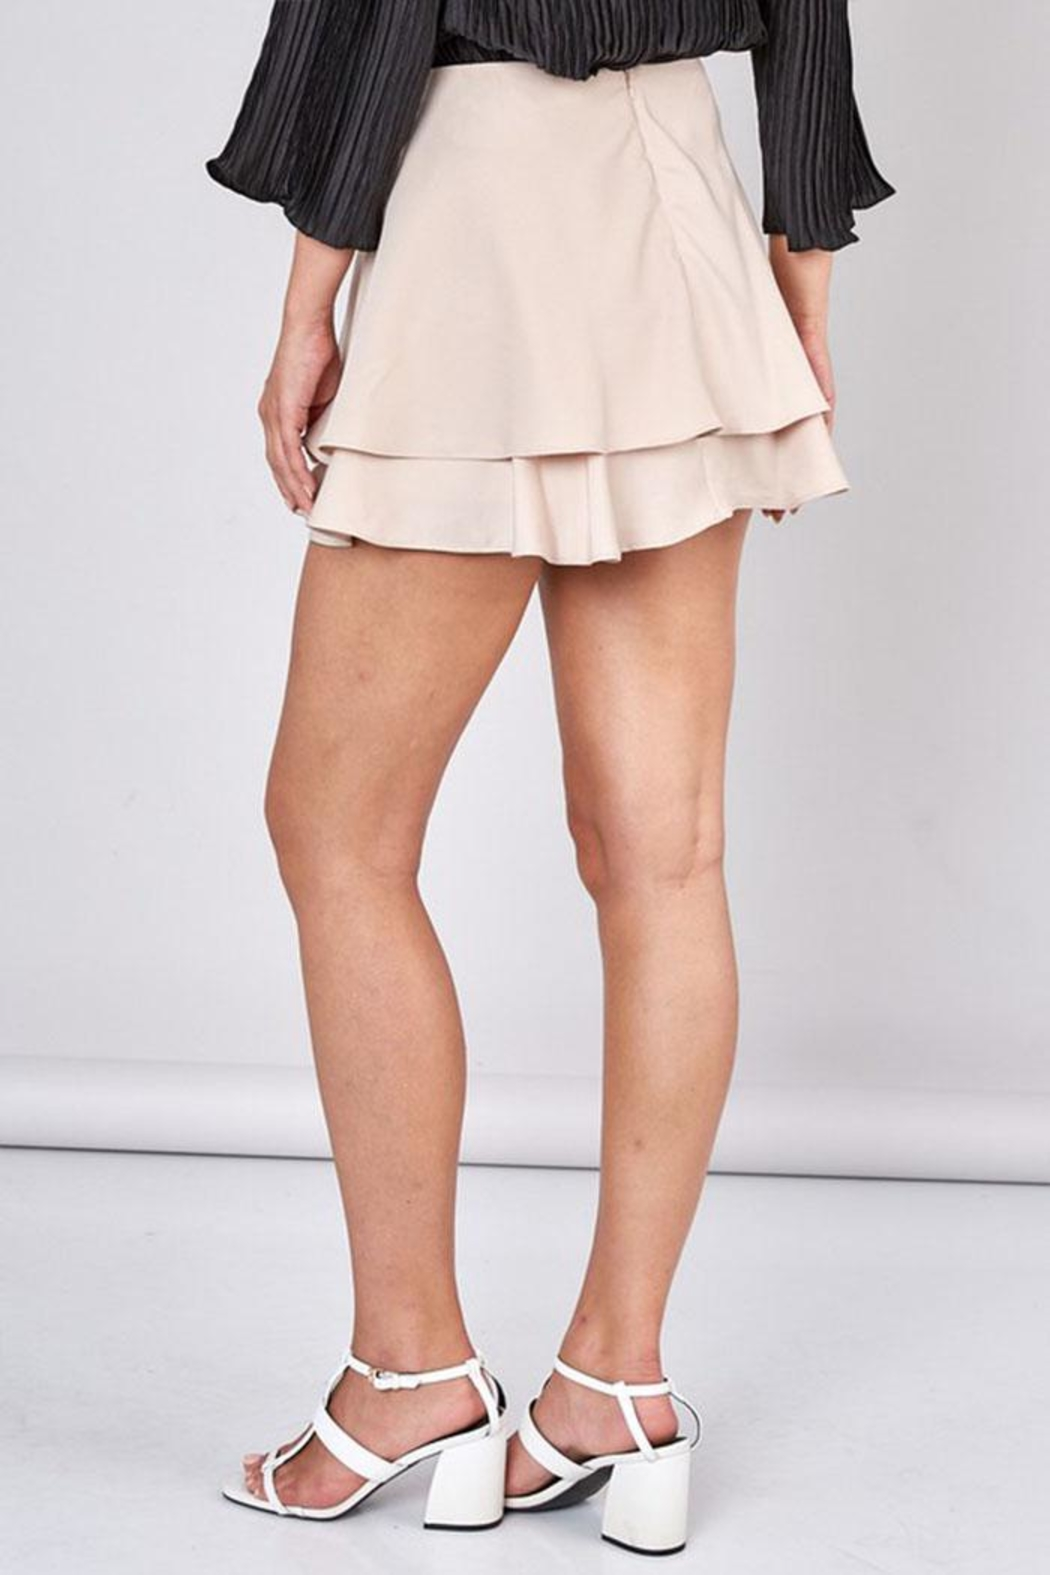 Do & Be Overlapping Mini Skirt - Side Cropped Image